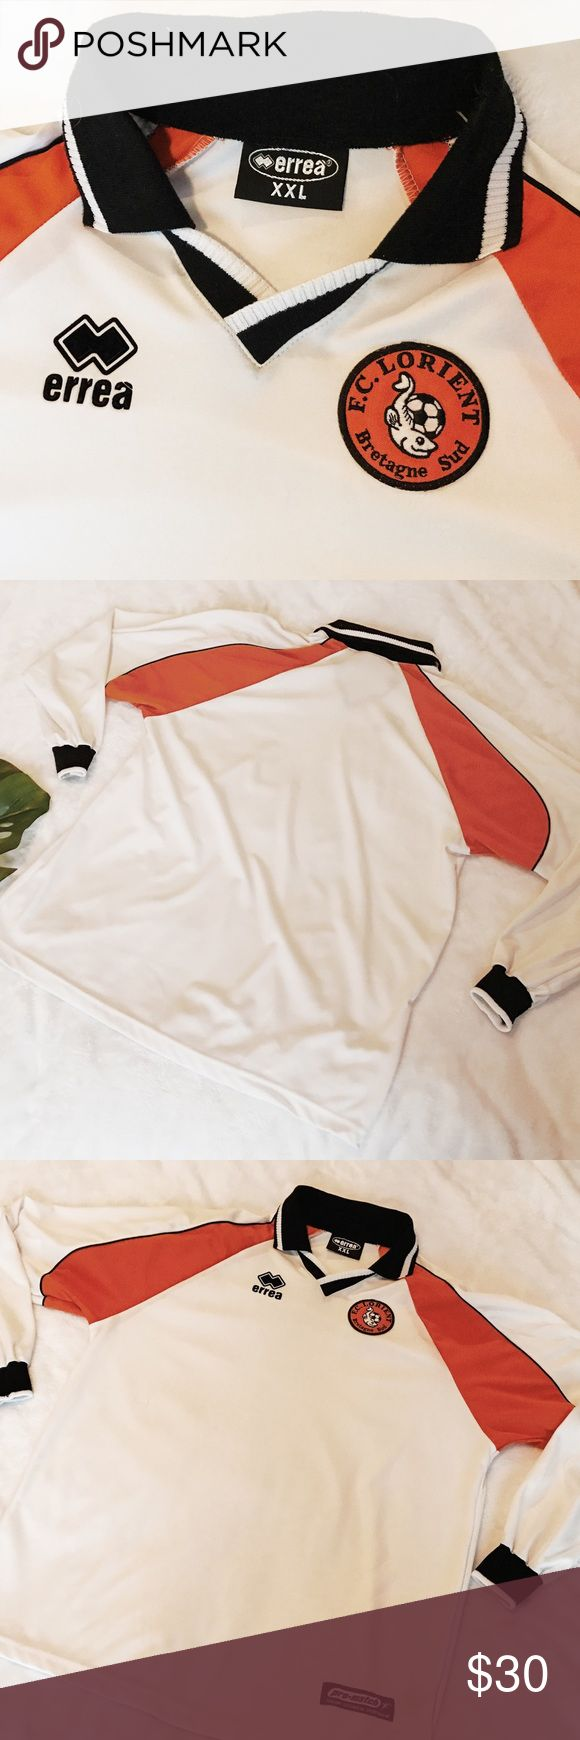 Errea : F.C. Lorient long sleeve soccer jersey Errea : F.C. Lorient long sleeve soccer jersey / XXL / Worn and washed only a couple times, in like new condition free of stains or visible flaws. Errea Shirts Tees - Long Sleeve